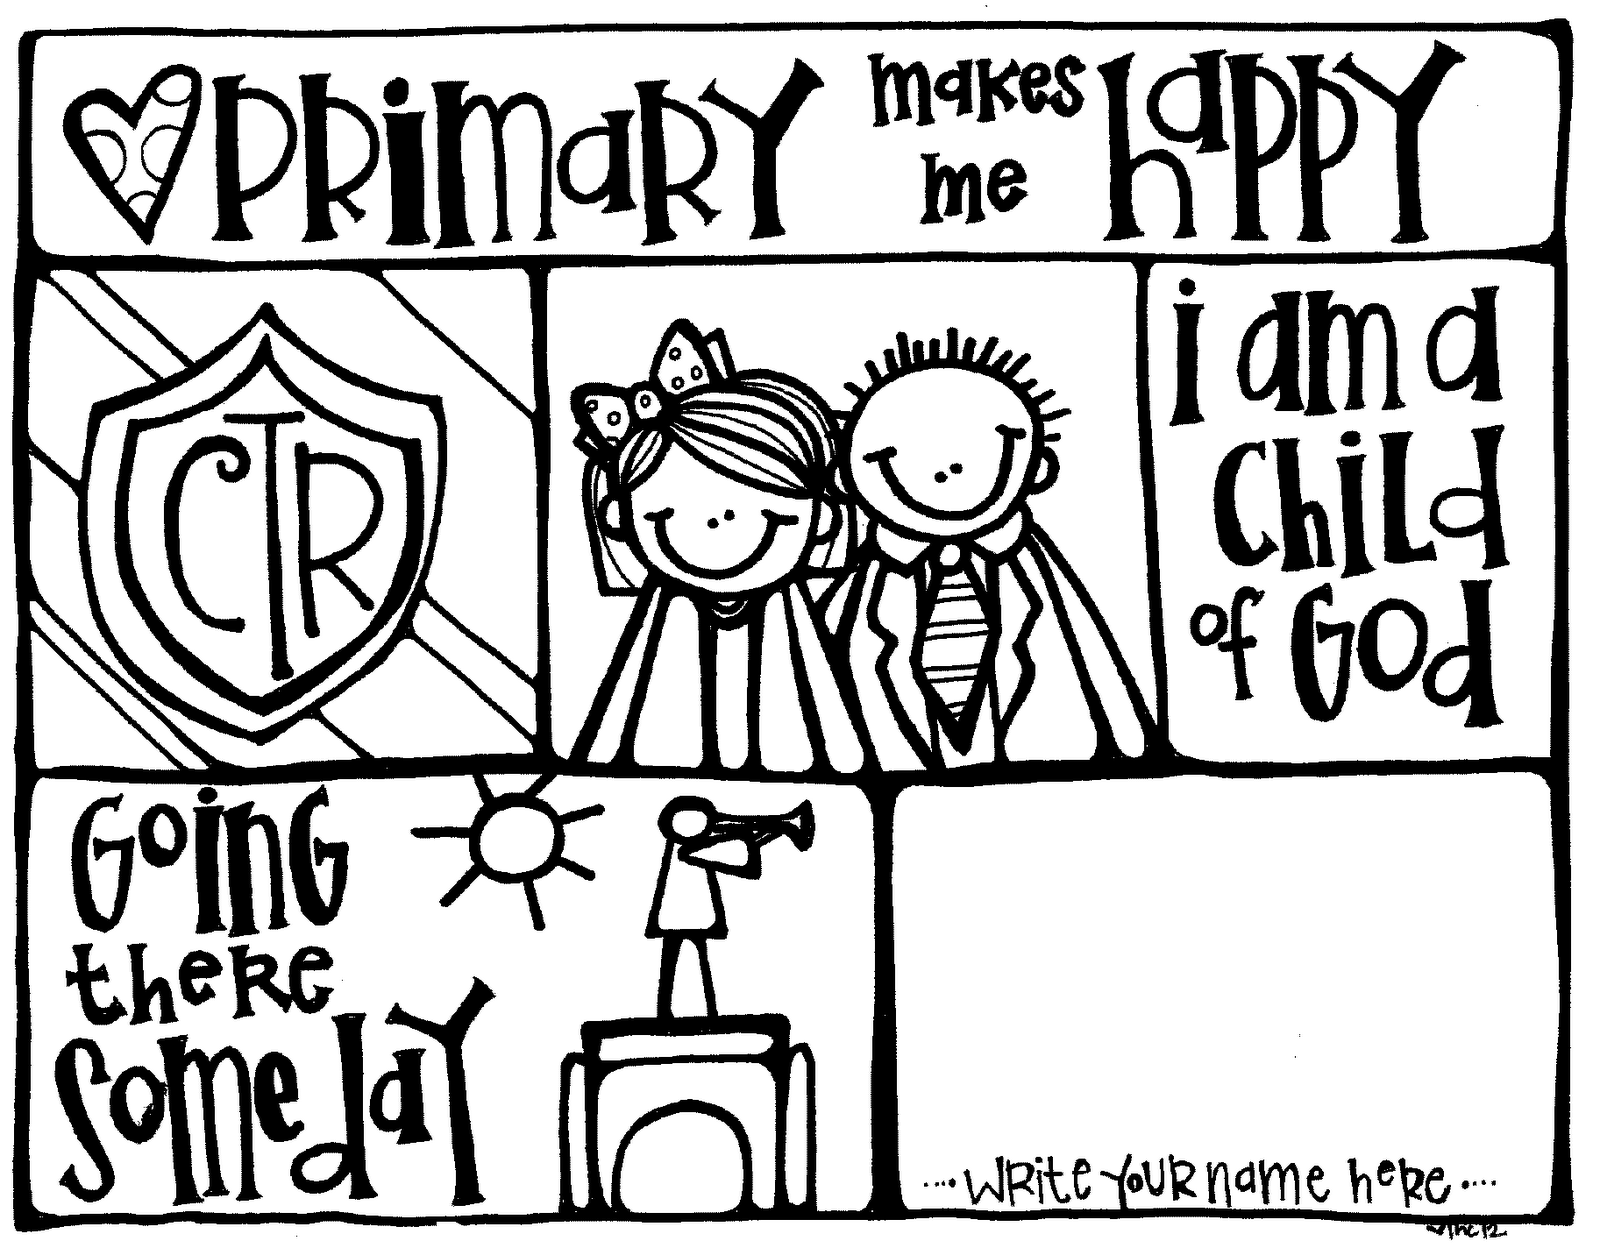 primary coloring pages primary coloring page from ldsorg a little boy comforts primary coloring pages